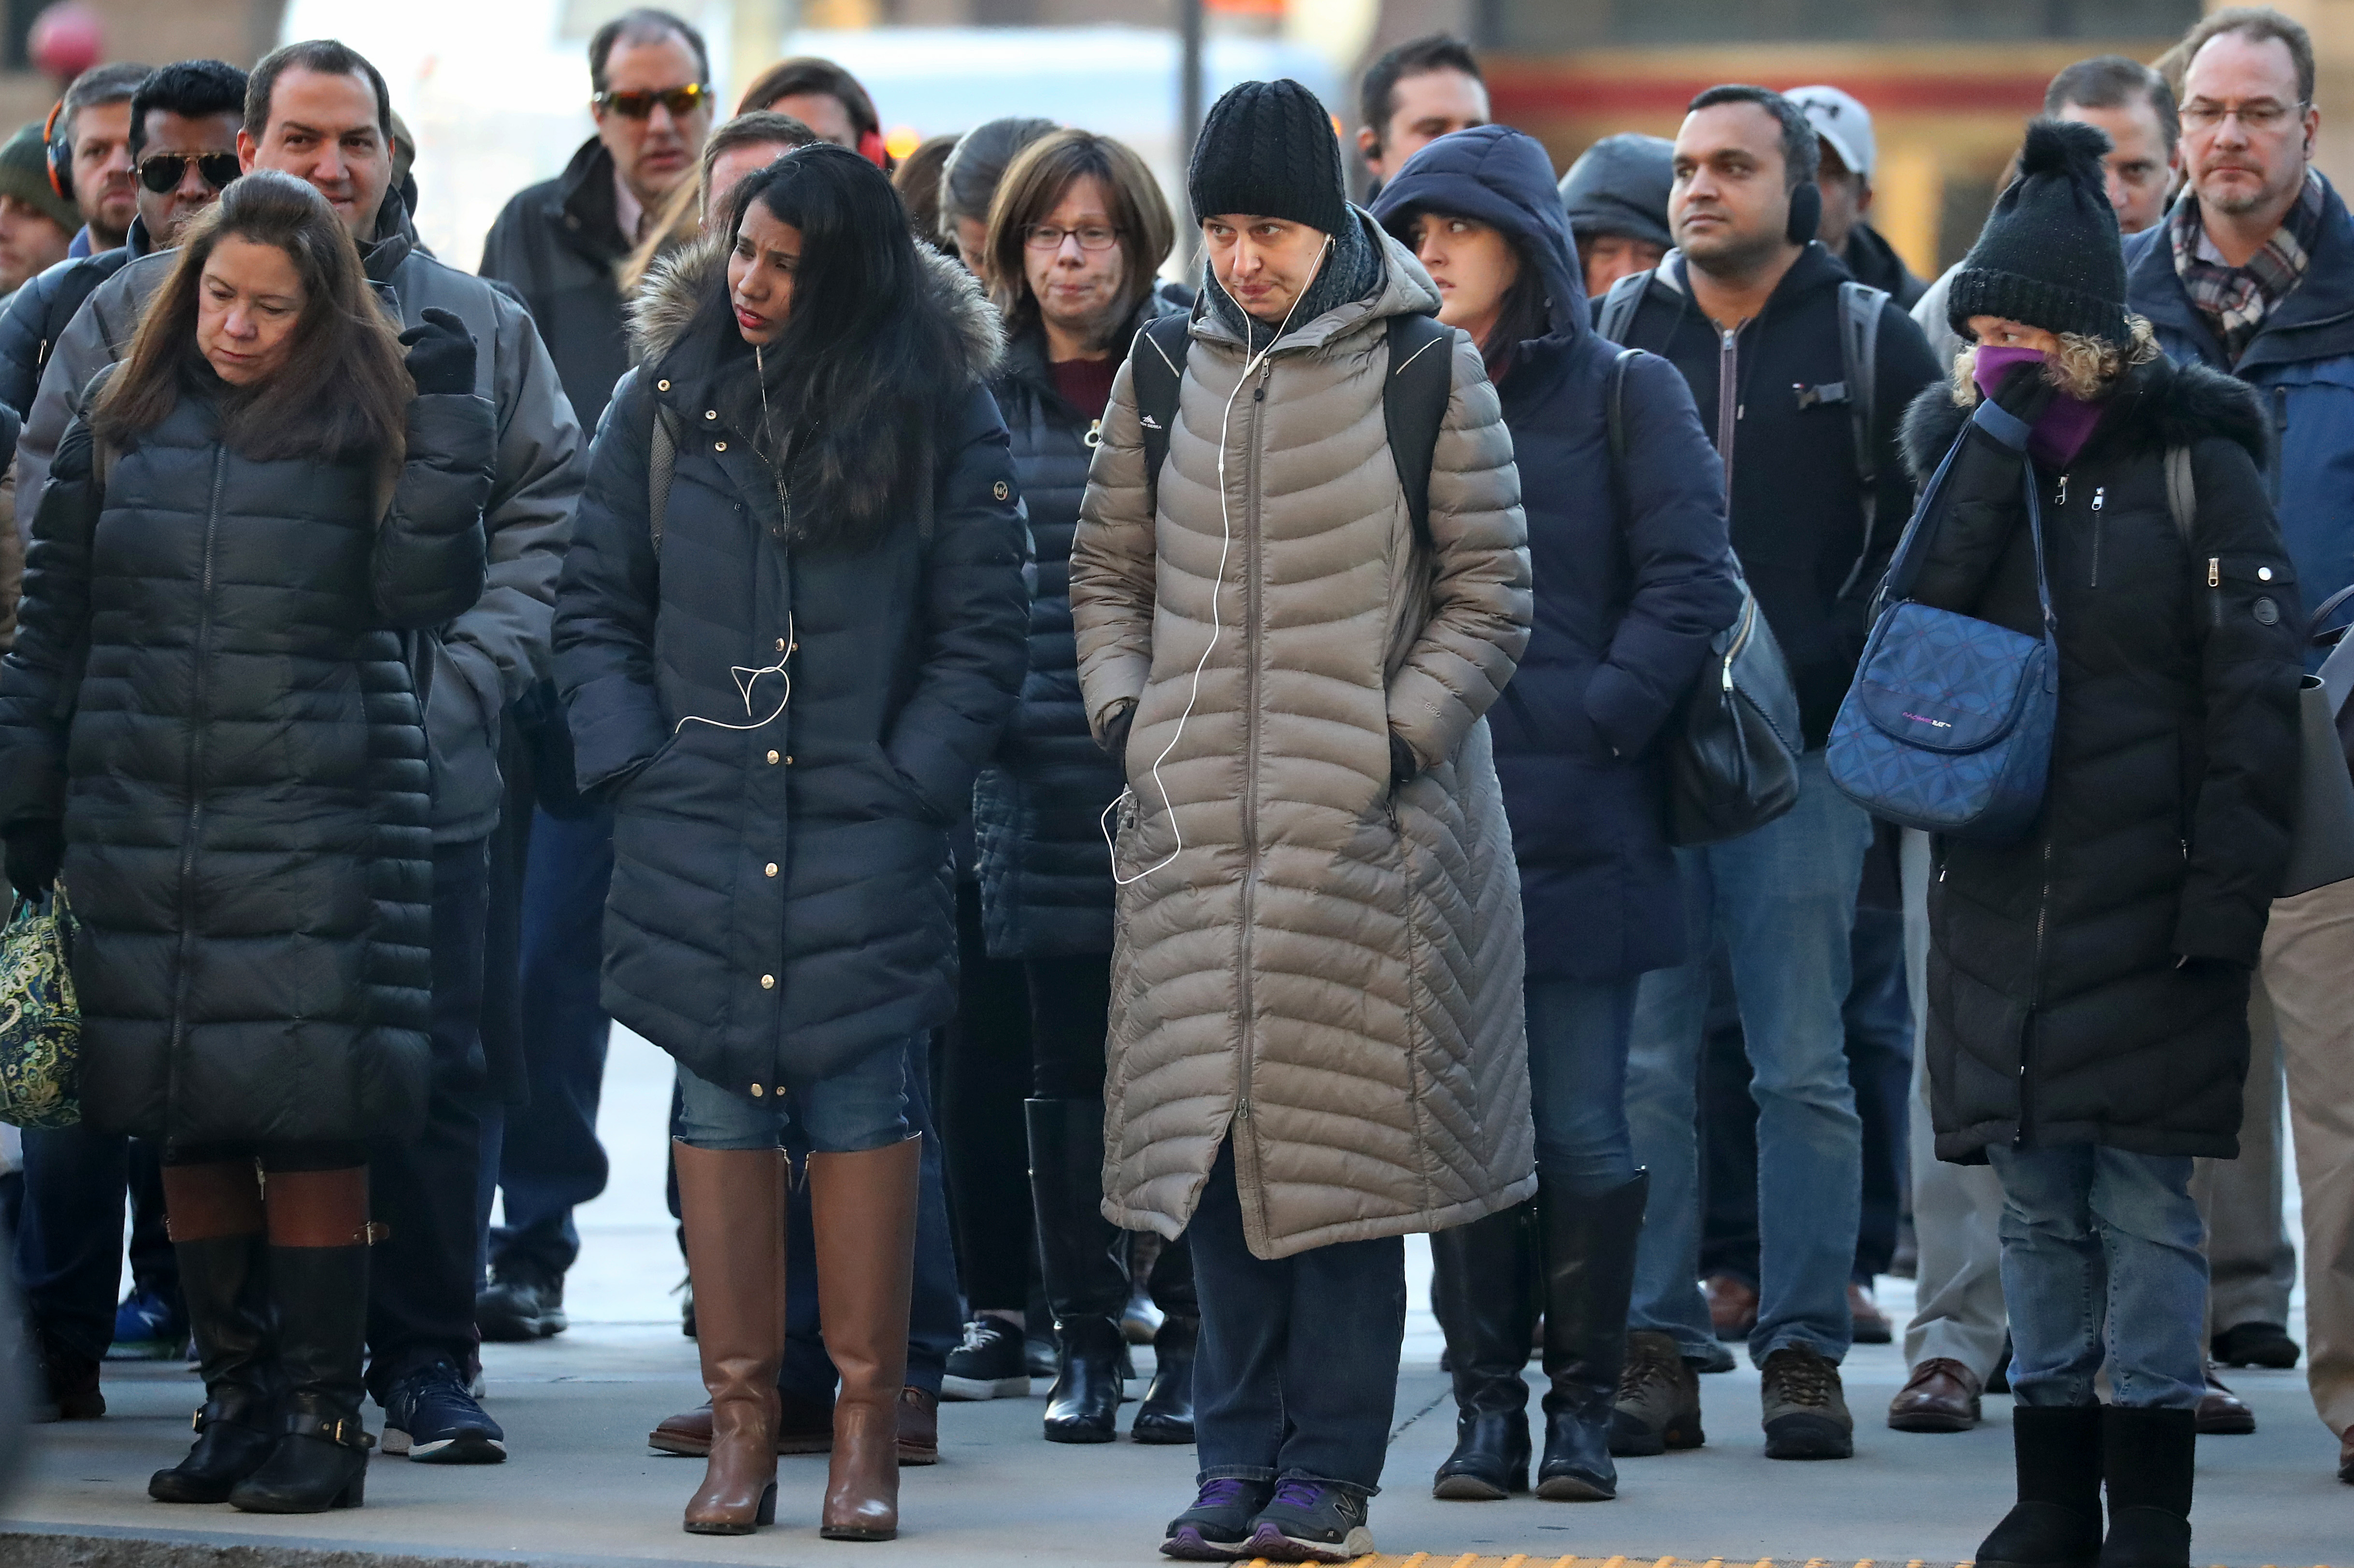 a5eb9771dfc8 Some women think they can escape the long, dark, puffy coat. But many have  succumbed - The Boston Globe